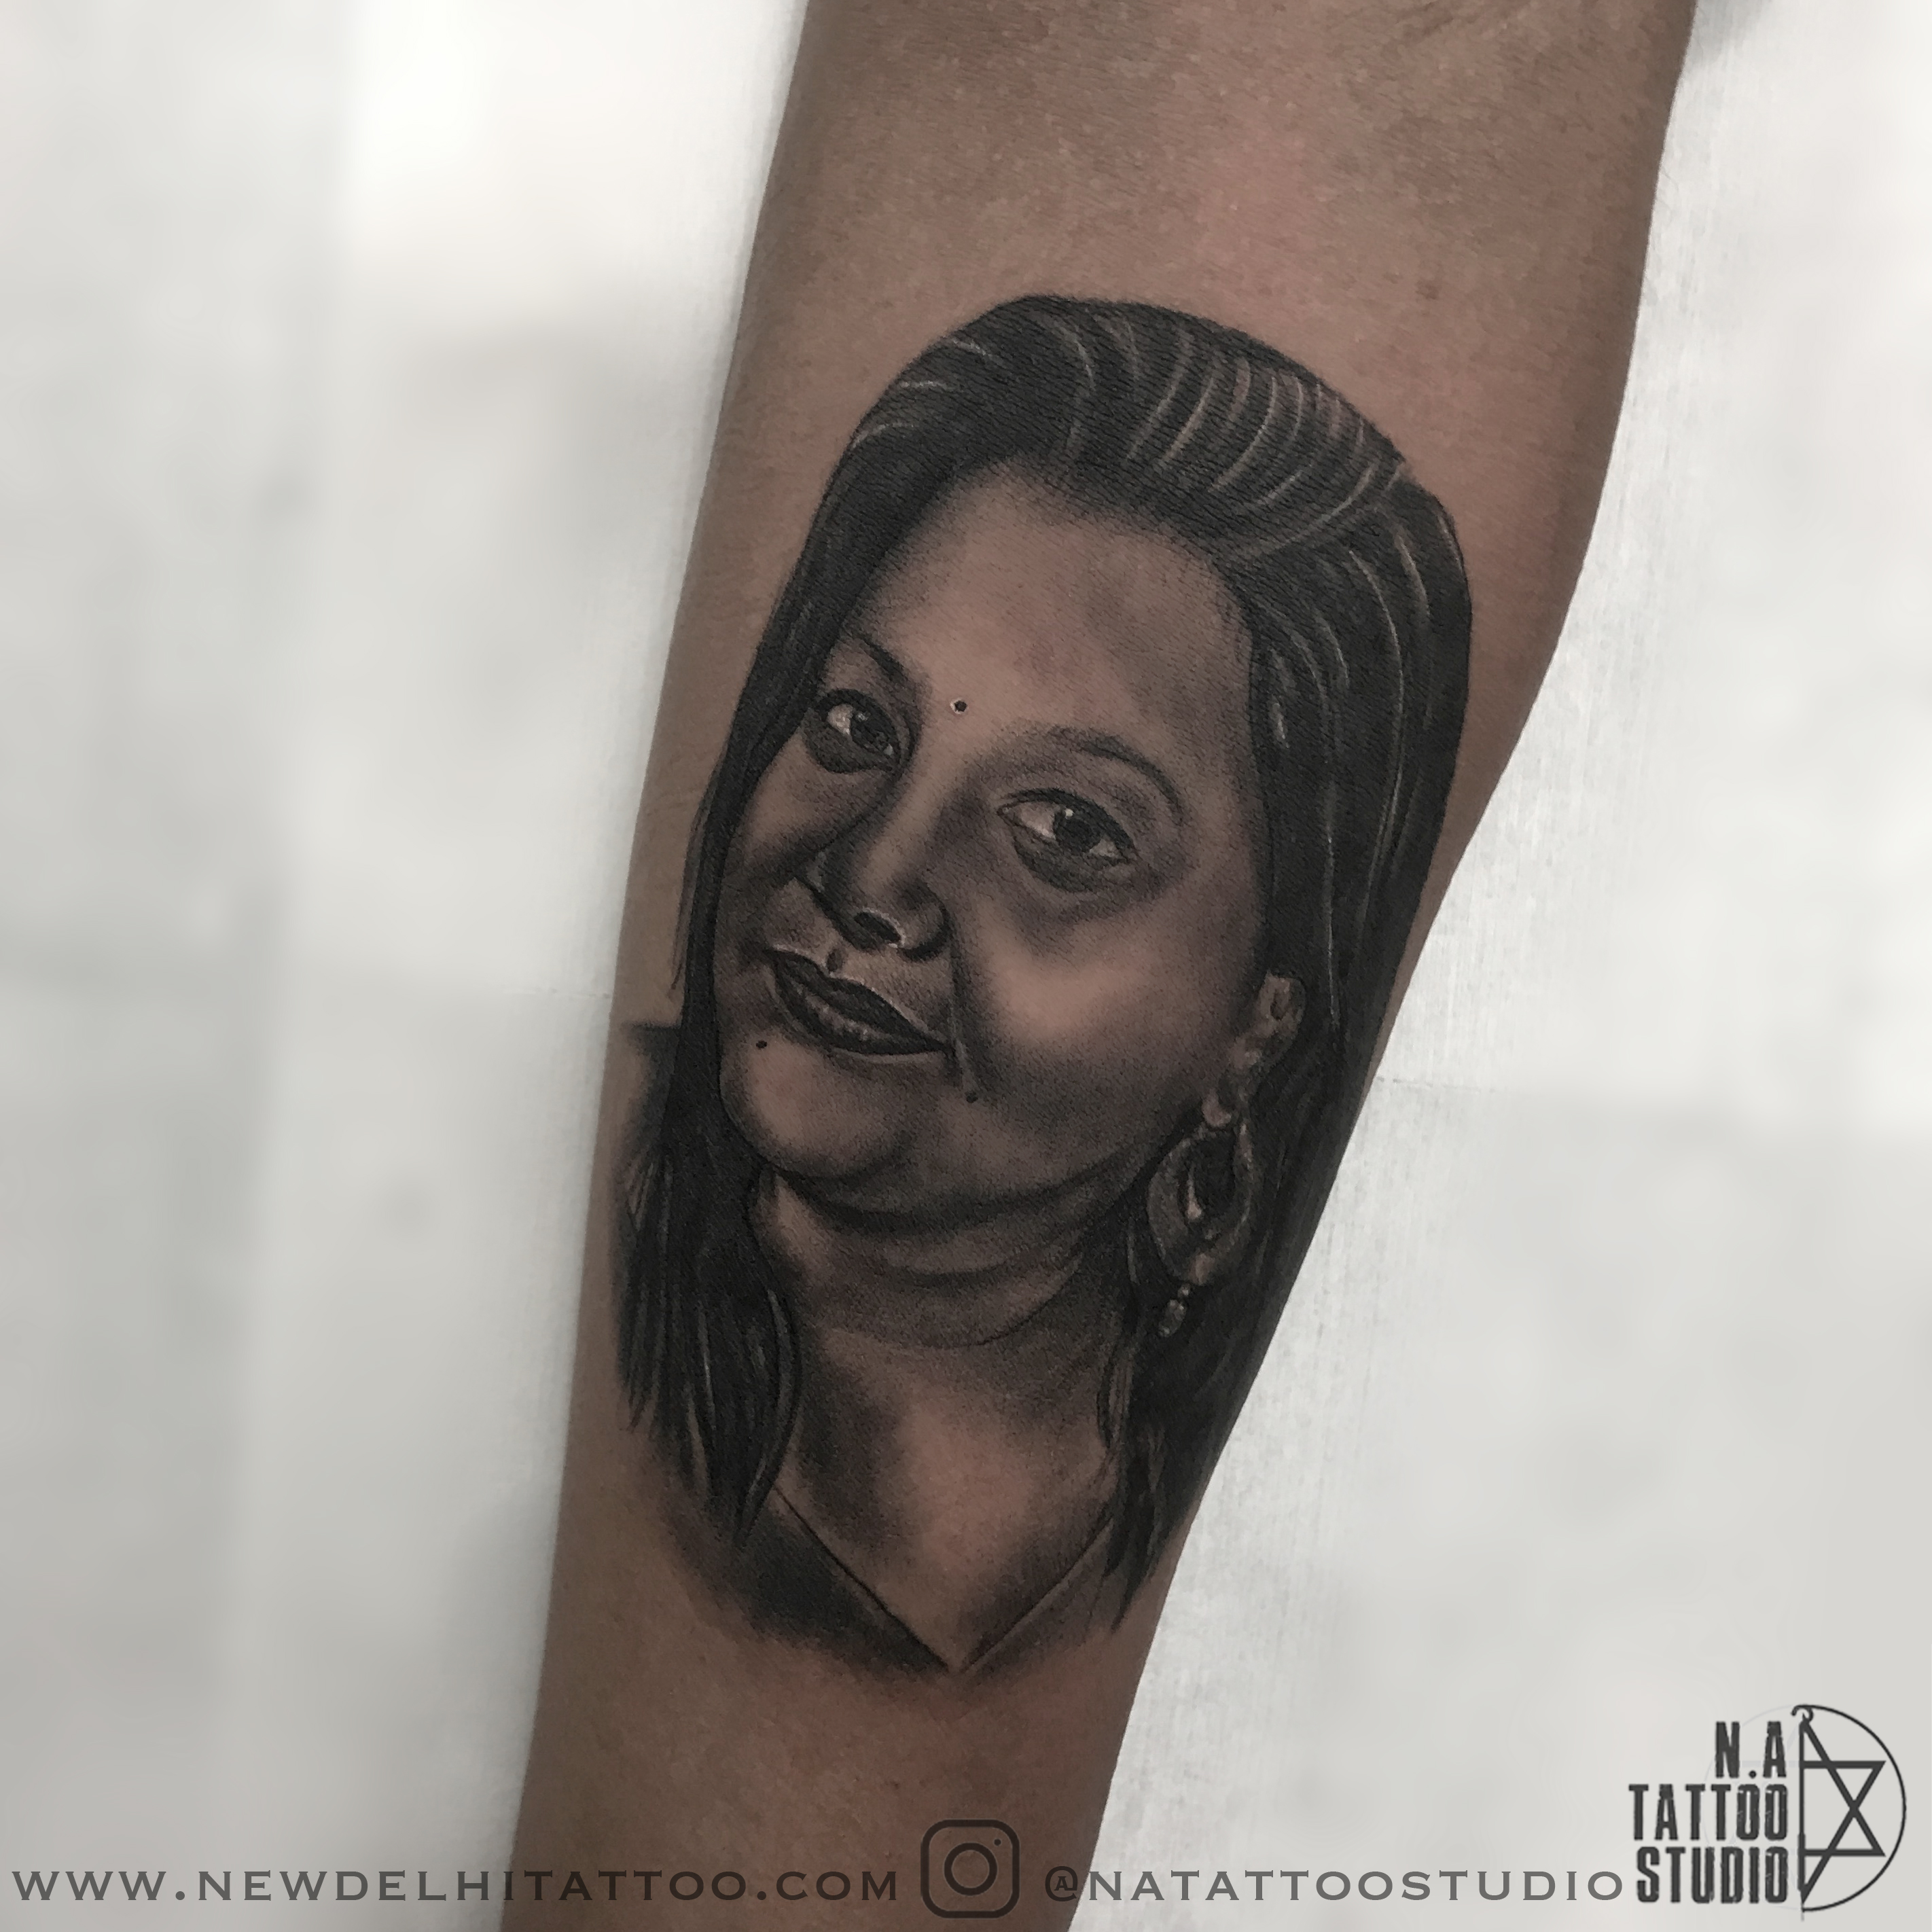 Portrait tattoo natattoostudio delhi